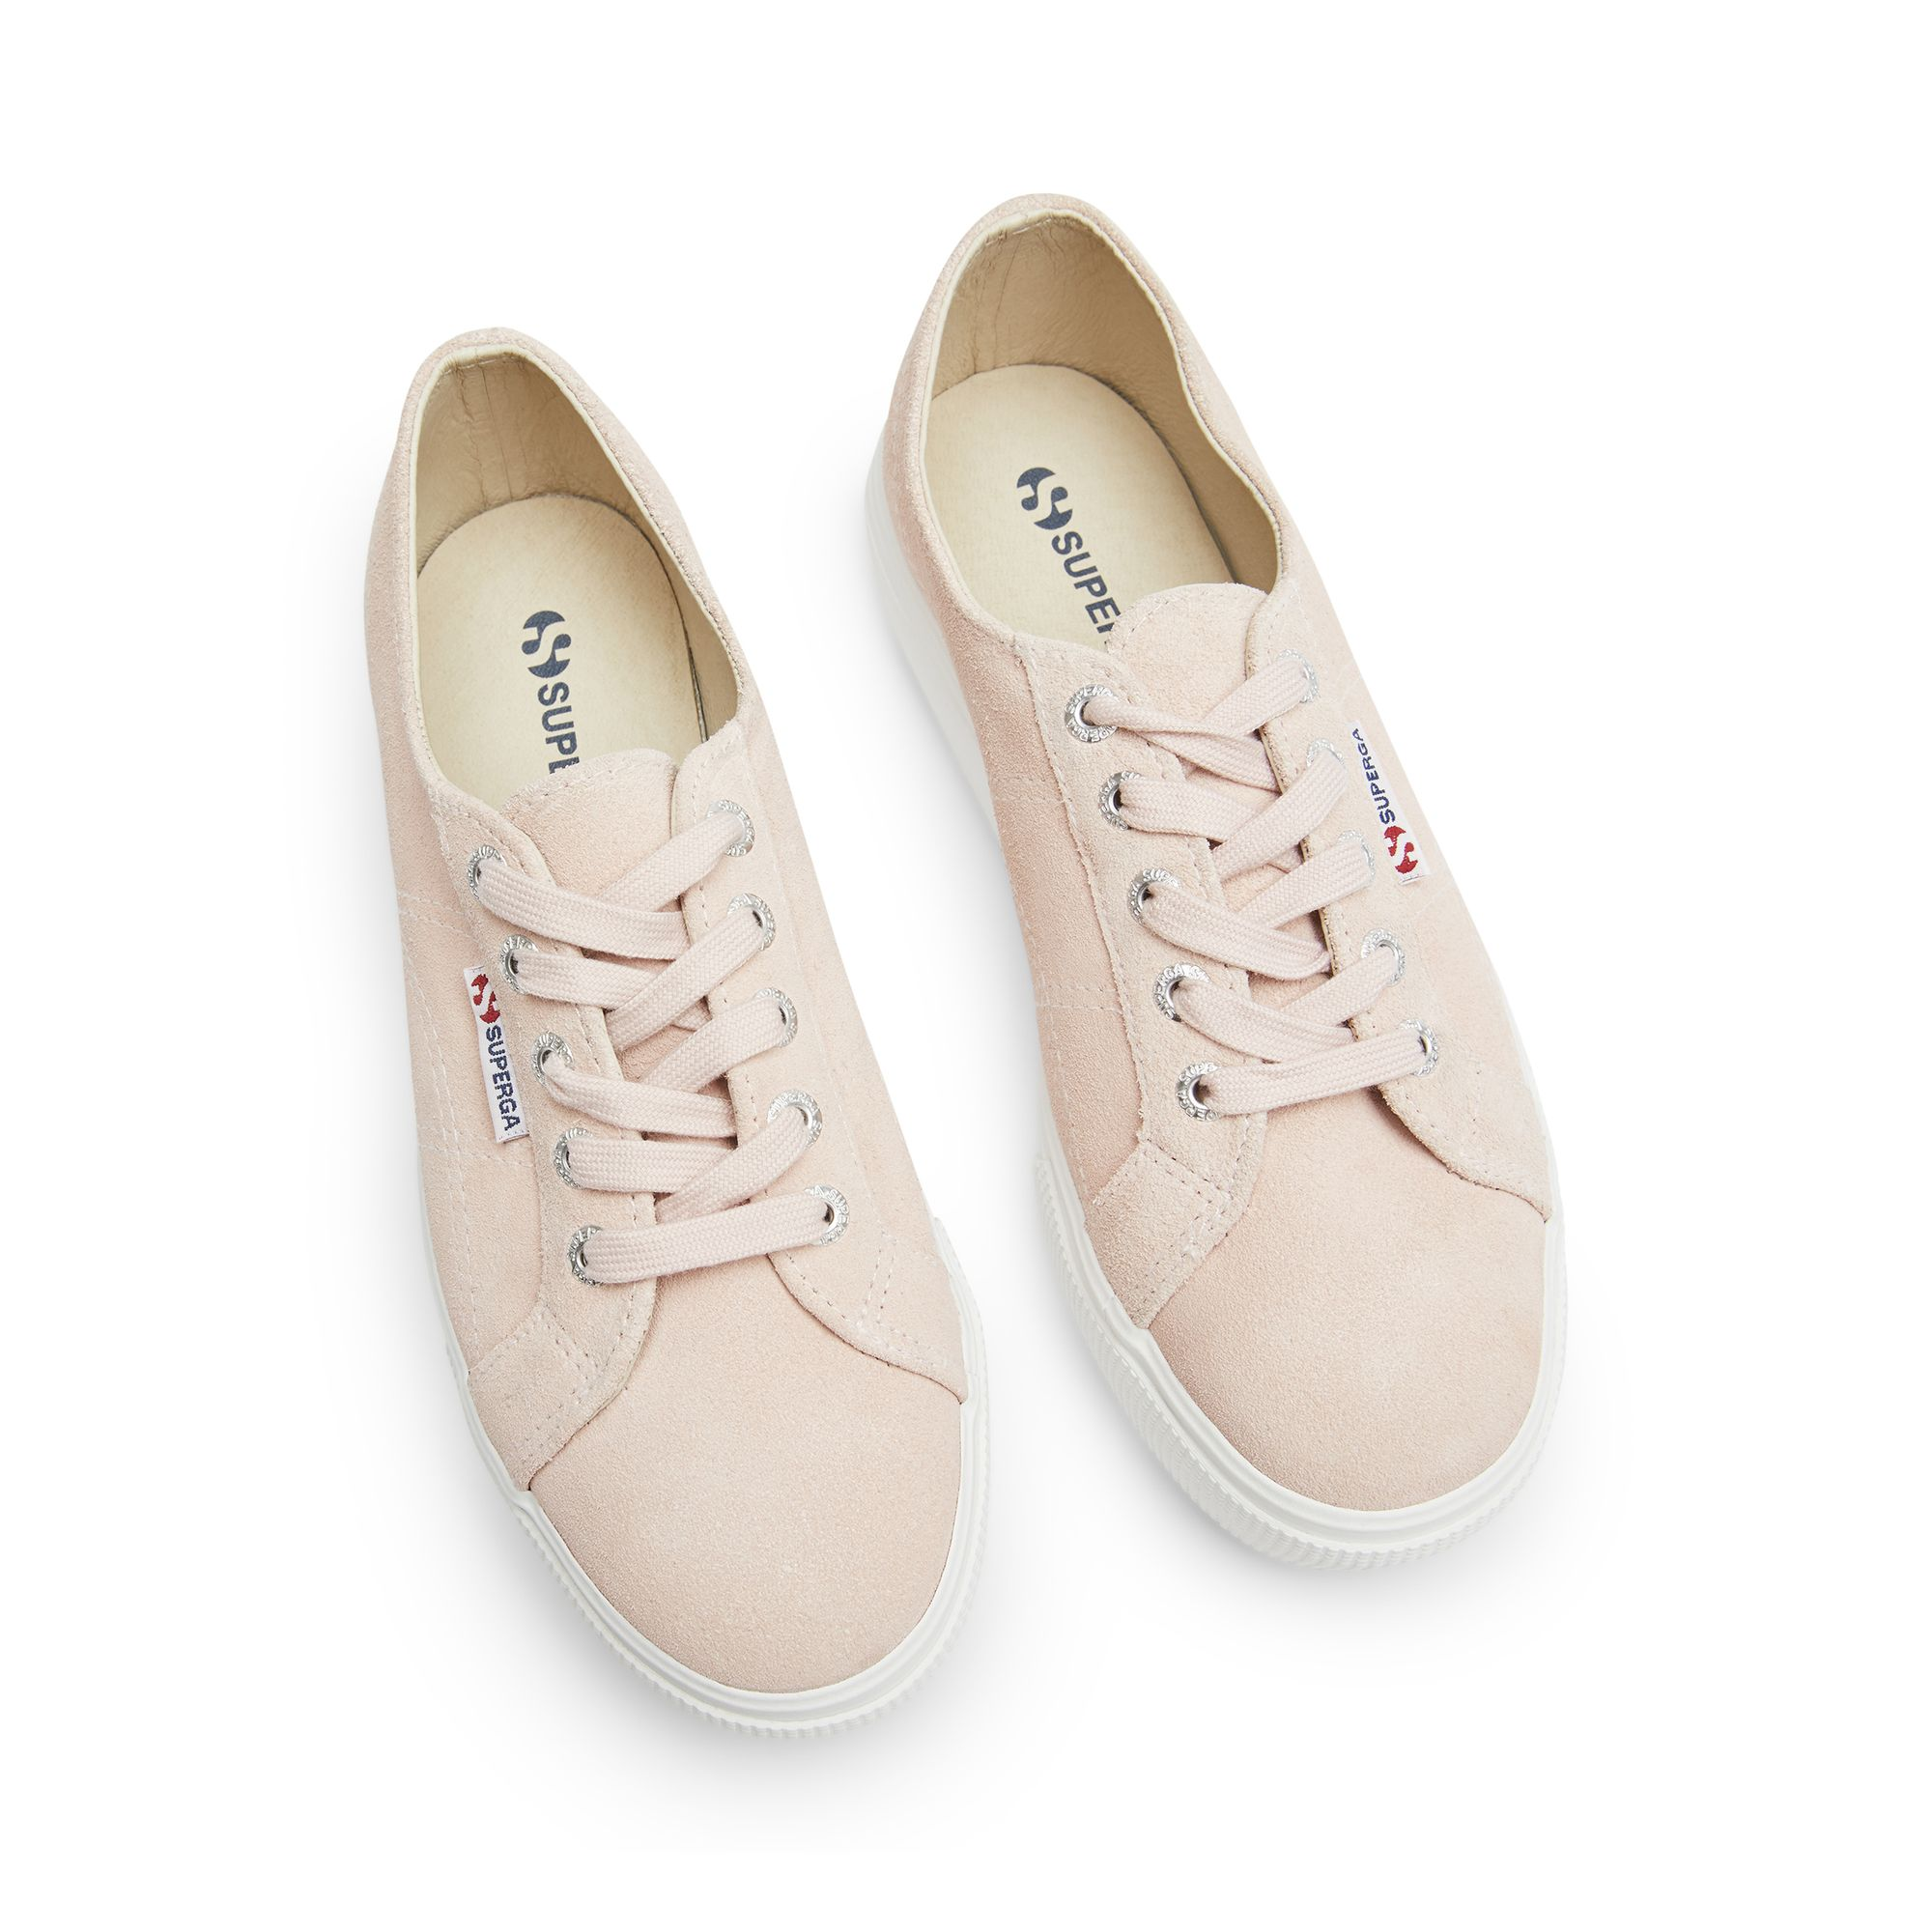 43112a93 Superga Superga 2790 sneakers med hög sula | Rizzo